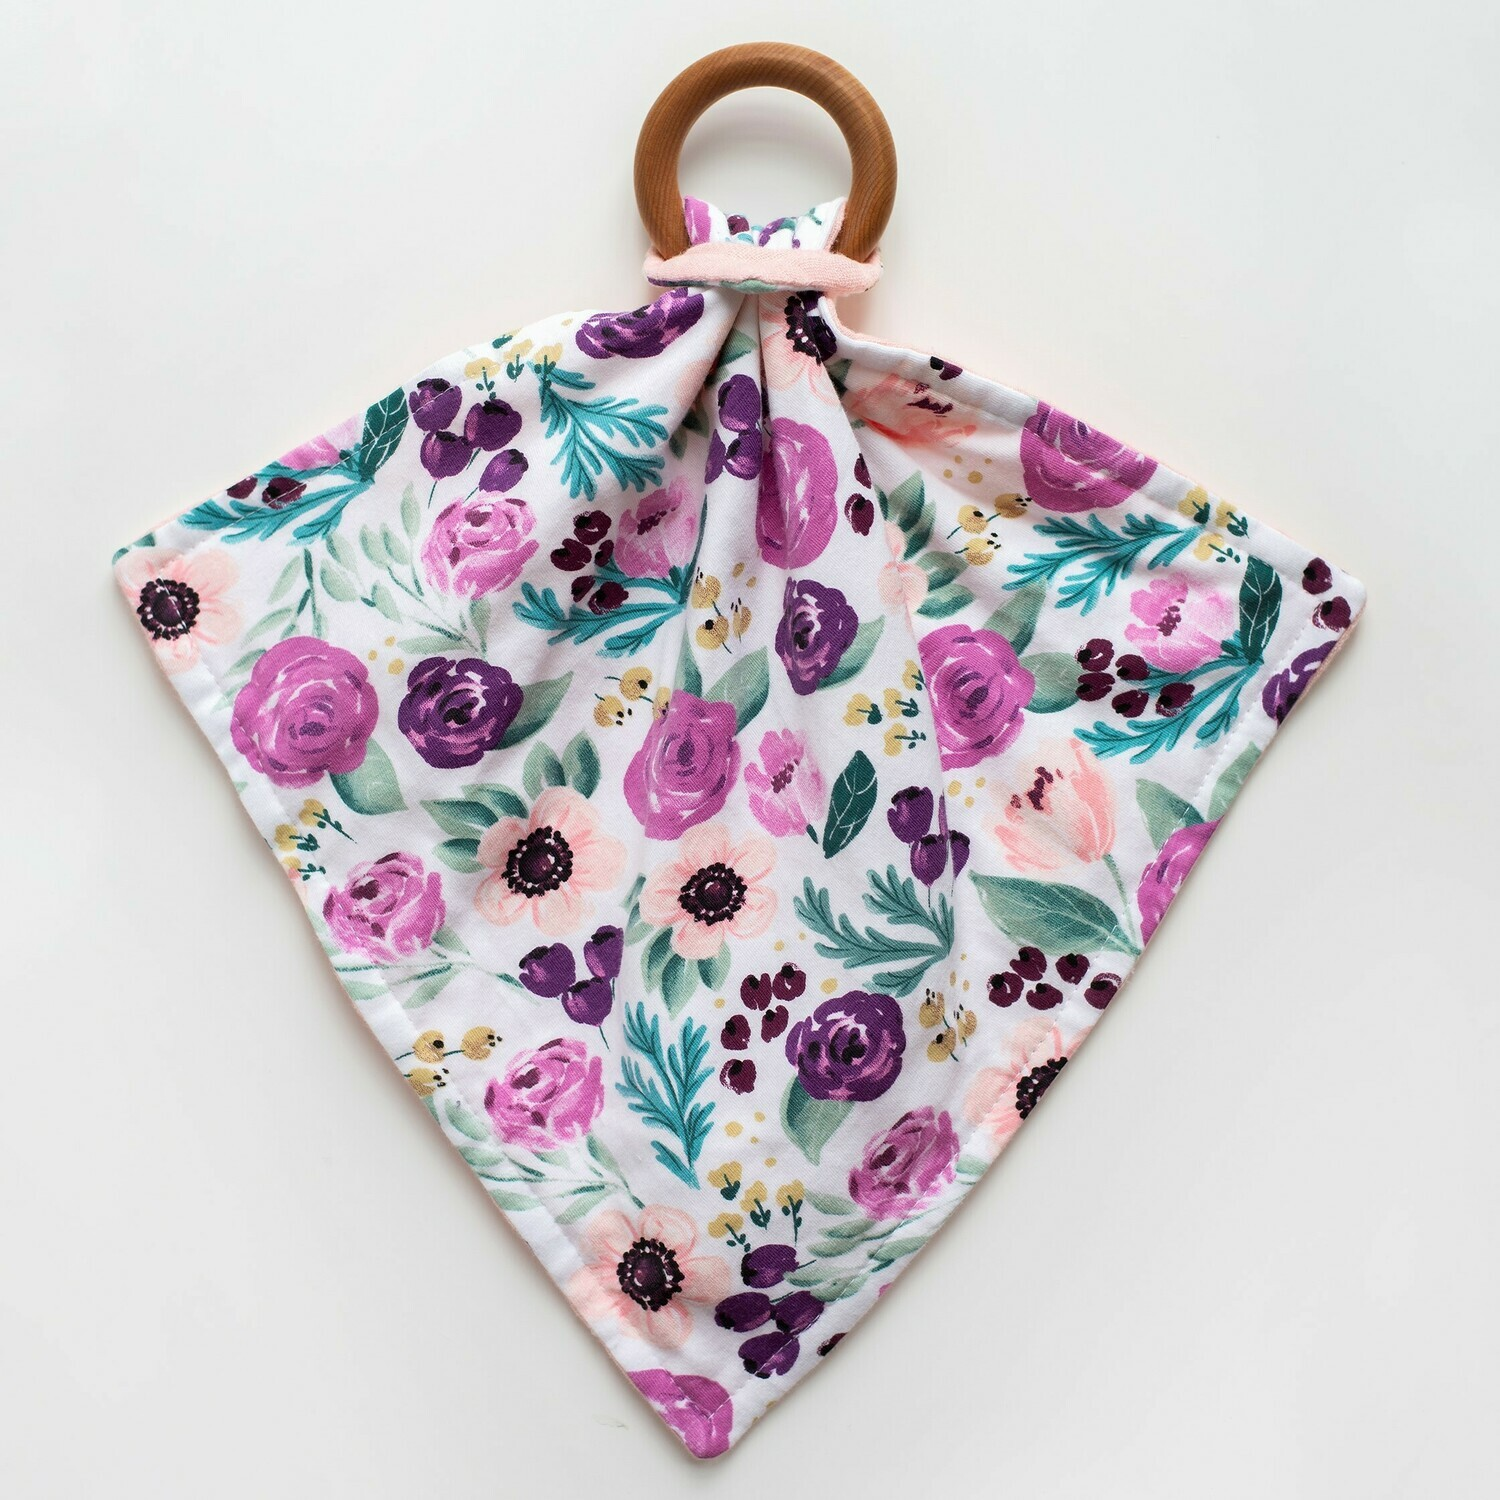 Orange Blossom Teething Lovey - Floral